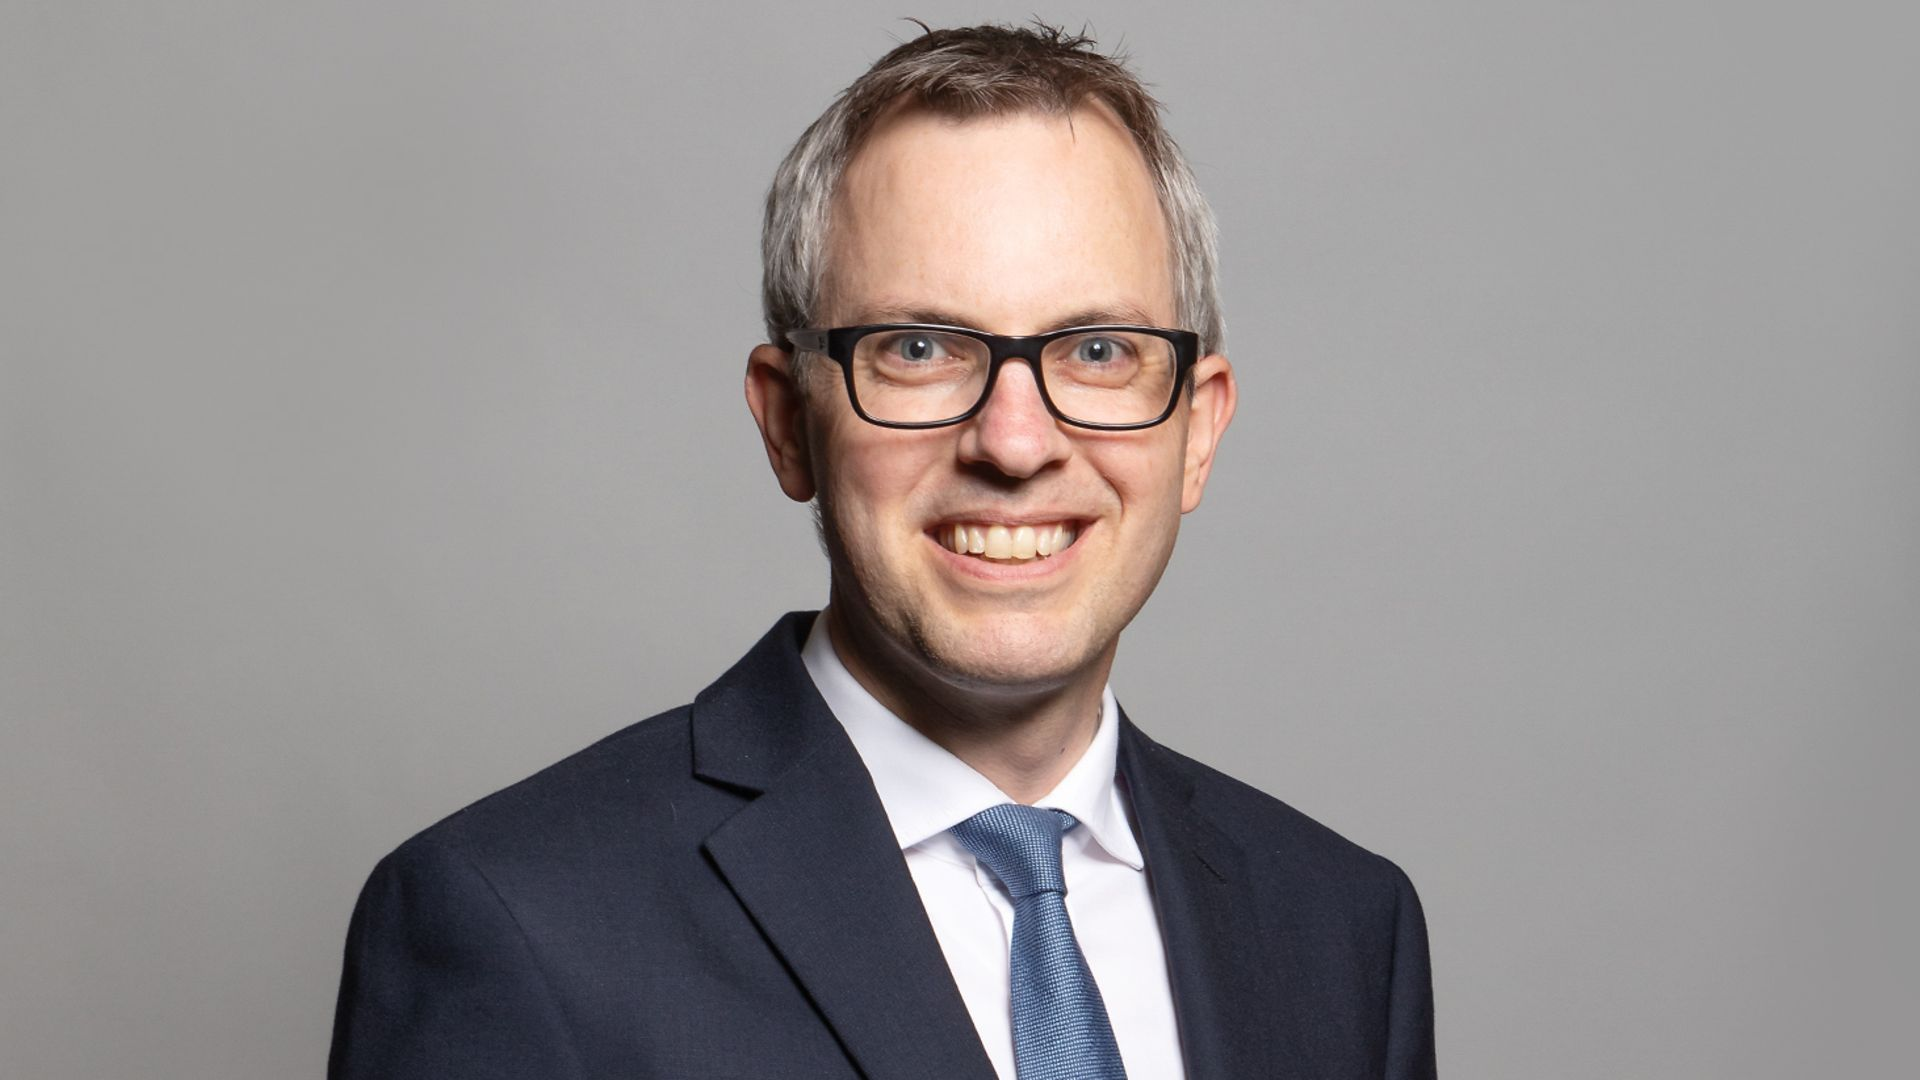 Tory MP James Wild (pictured above) claimed licence fee payers want the Union flag to feature more frequently on BBC documents - Credit: Richard Townshend/Houses of Parliament